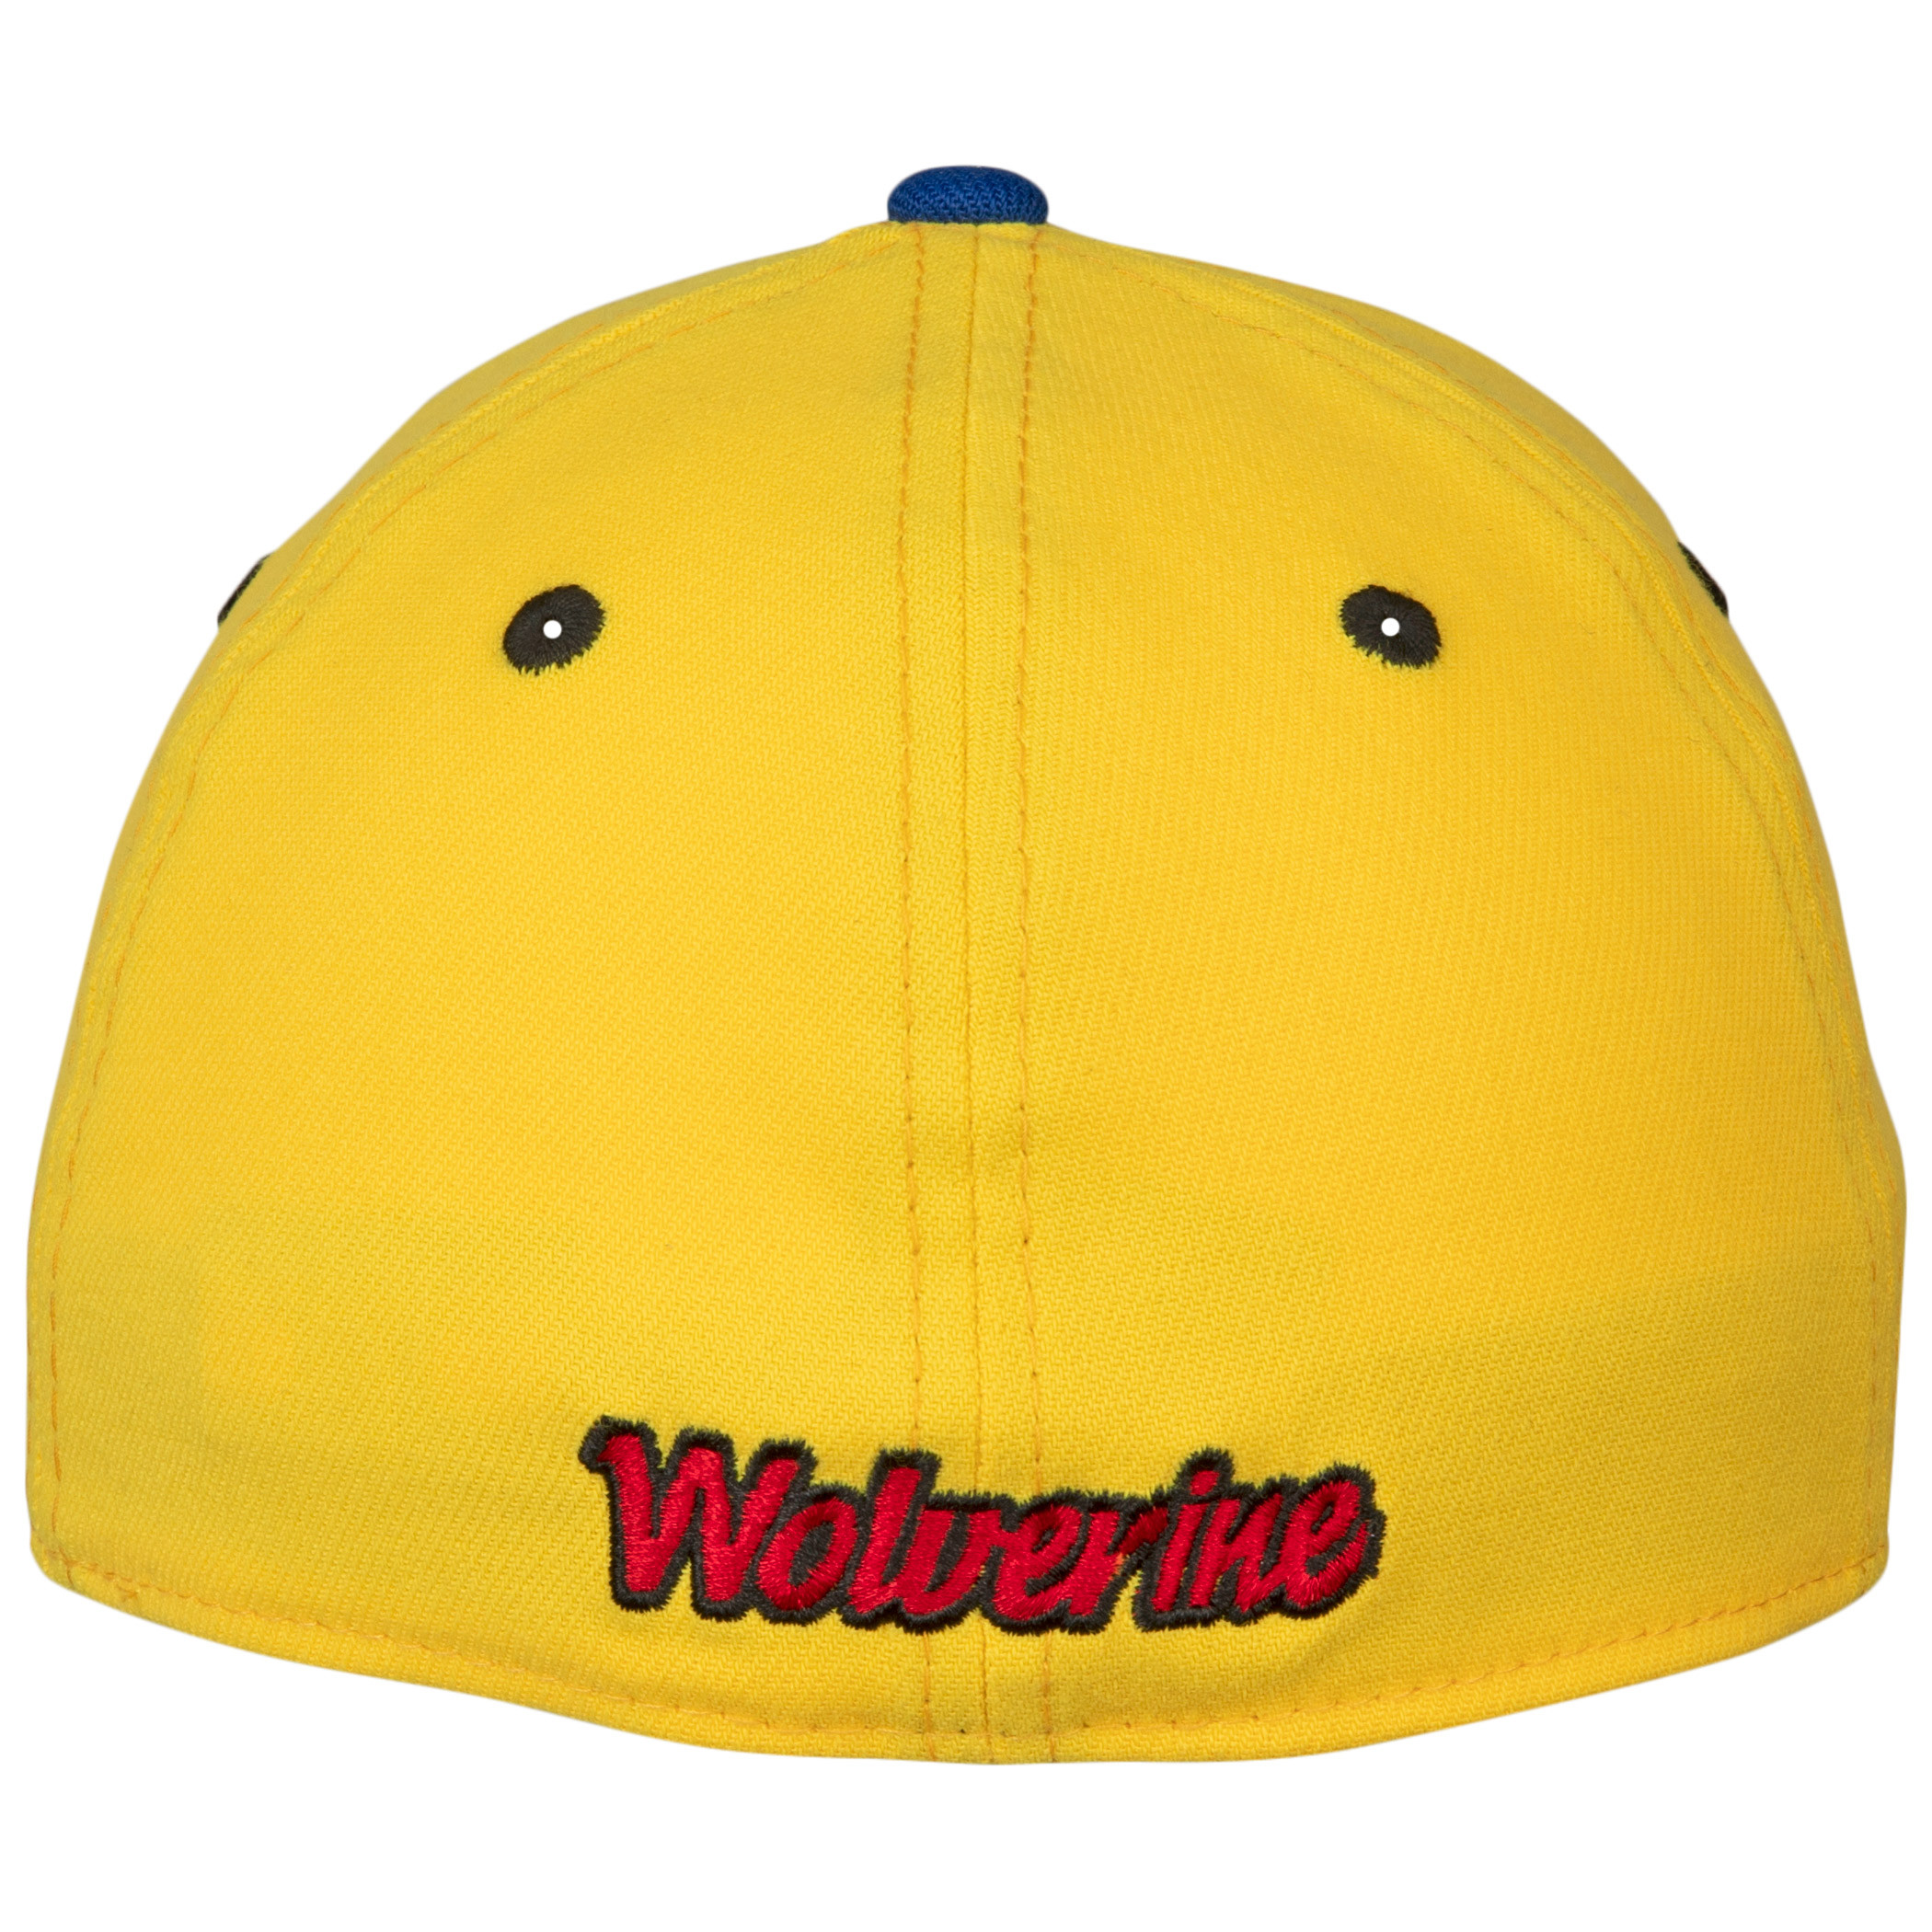 X-Men Symbol Wolverine Costume Themed New Era 39Thirty Fitted Hat